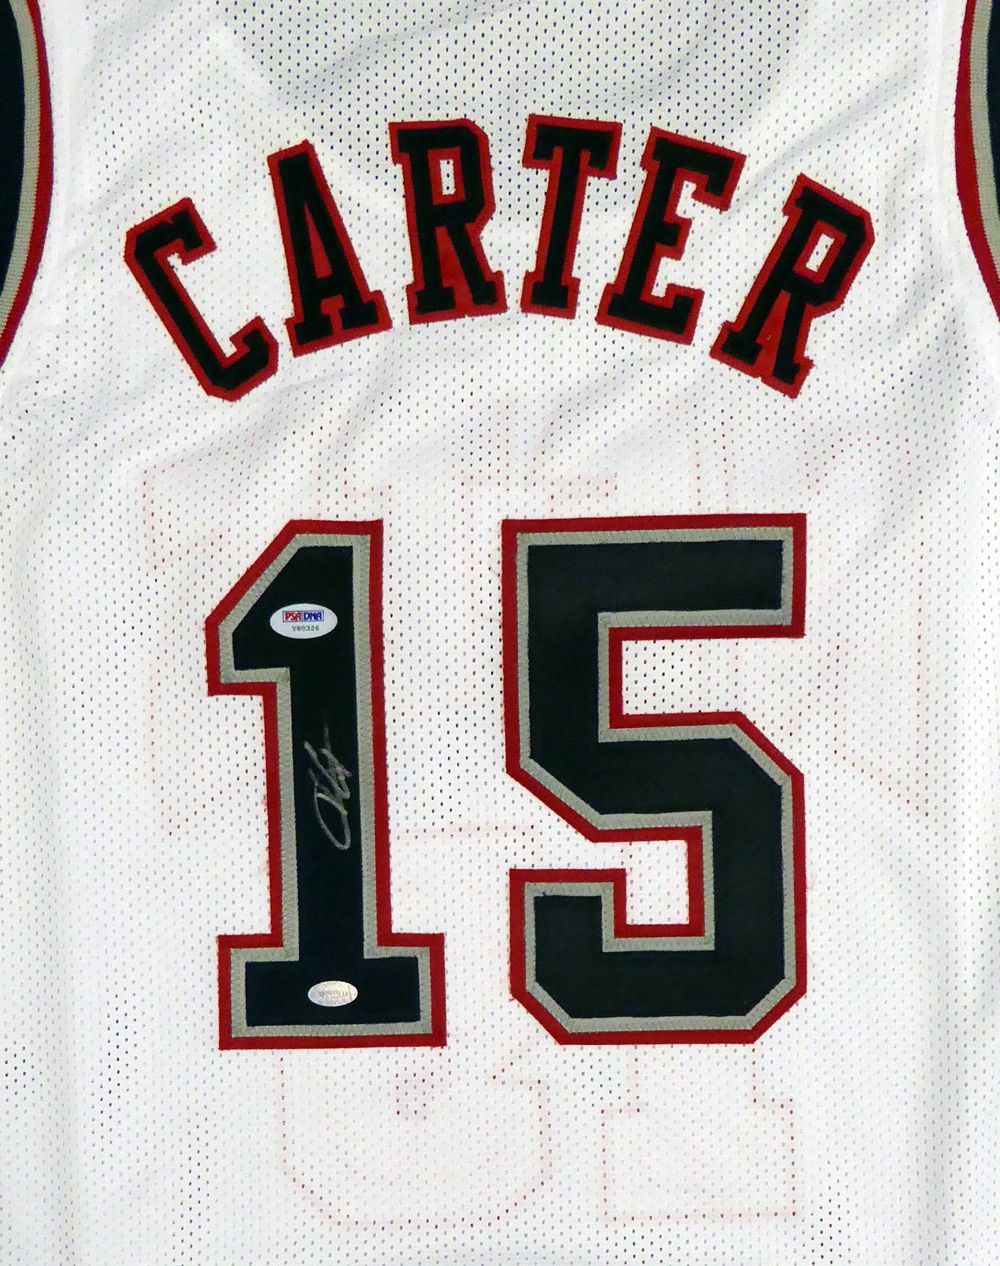 lowest price 48fdf e6bdf New Jersey Nets Vince Carter Autographed White Jersey PSA ...